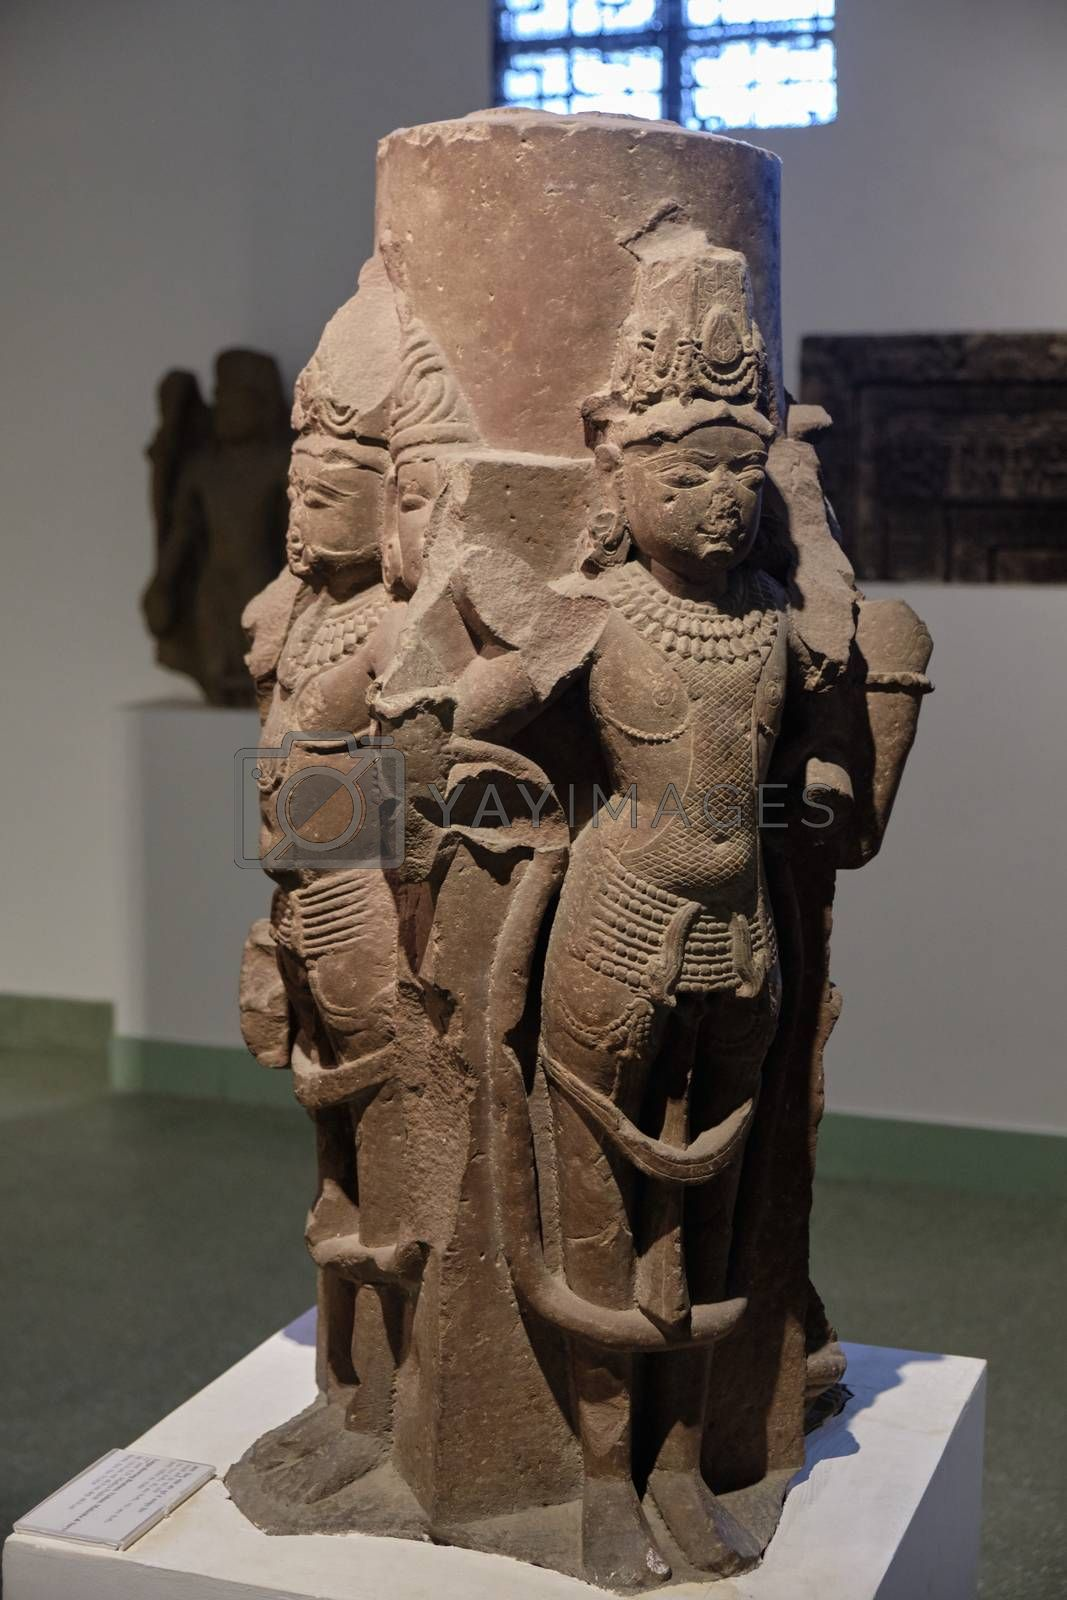 New Delhi / India - September 26, 2019: Stone statue of Hindu god Brahma in the National Museum of India in New Delhi